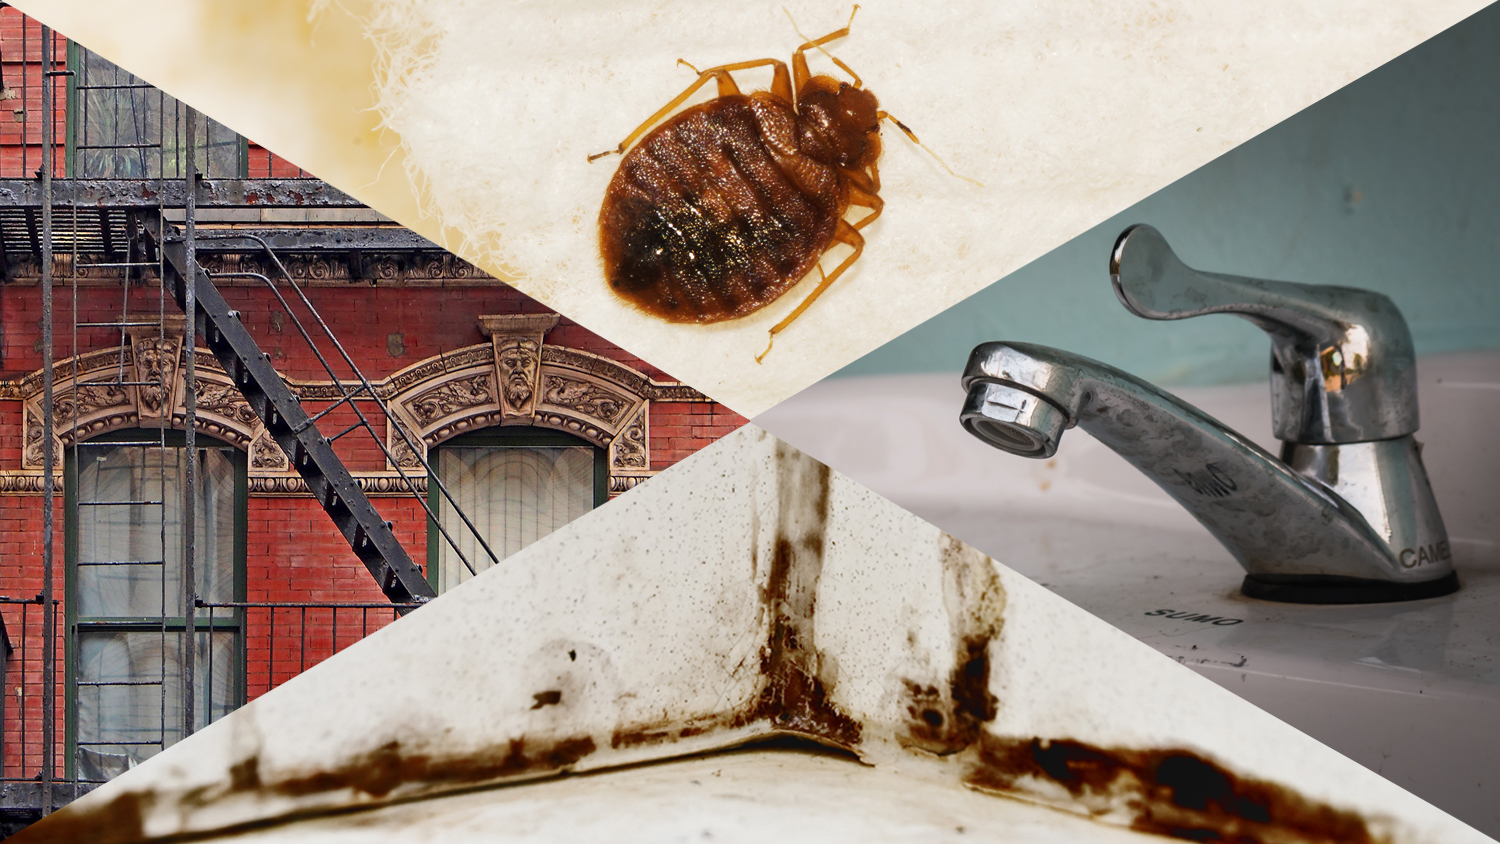 How to deal with bed bugs, noisy neighbors and other NYC apartment problems